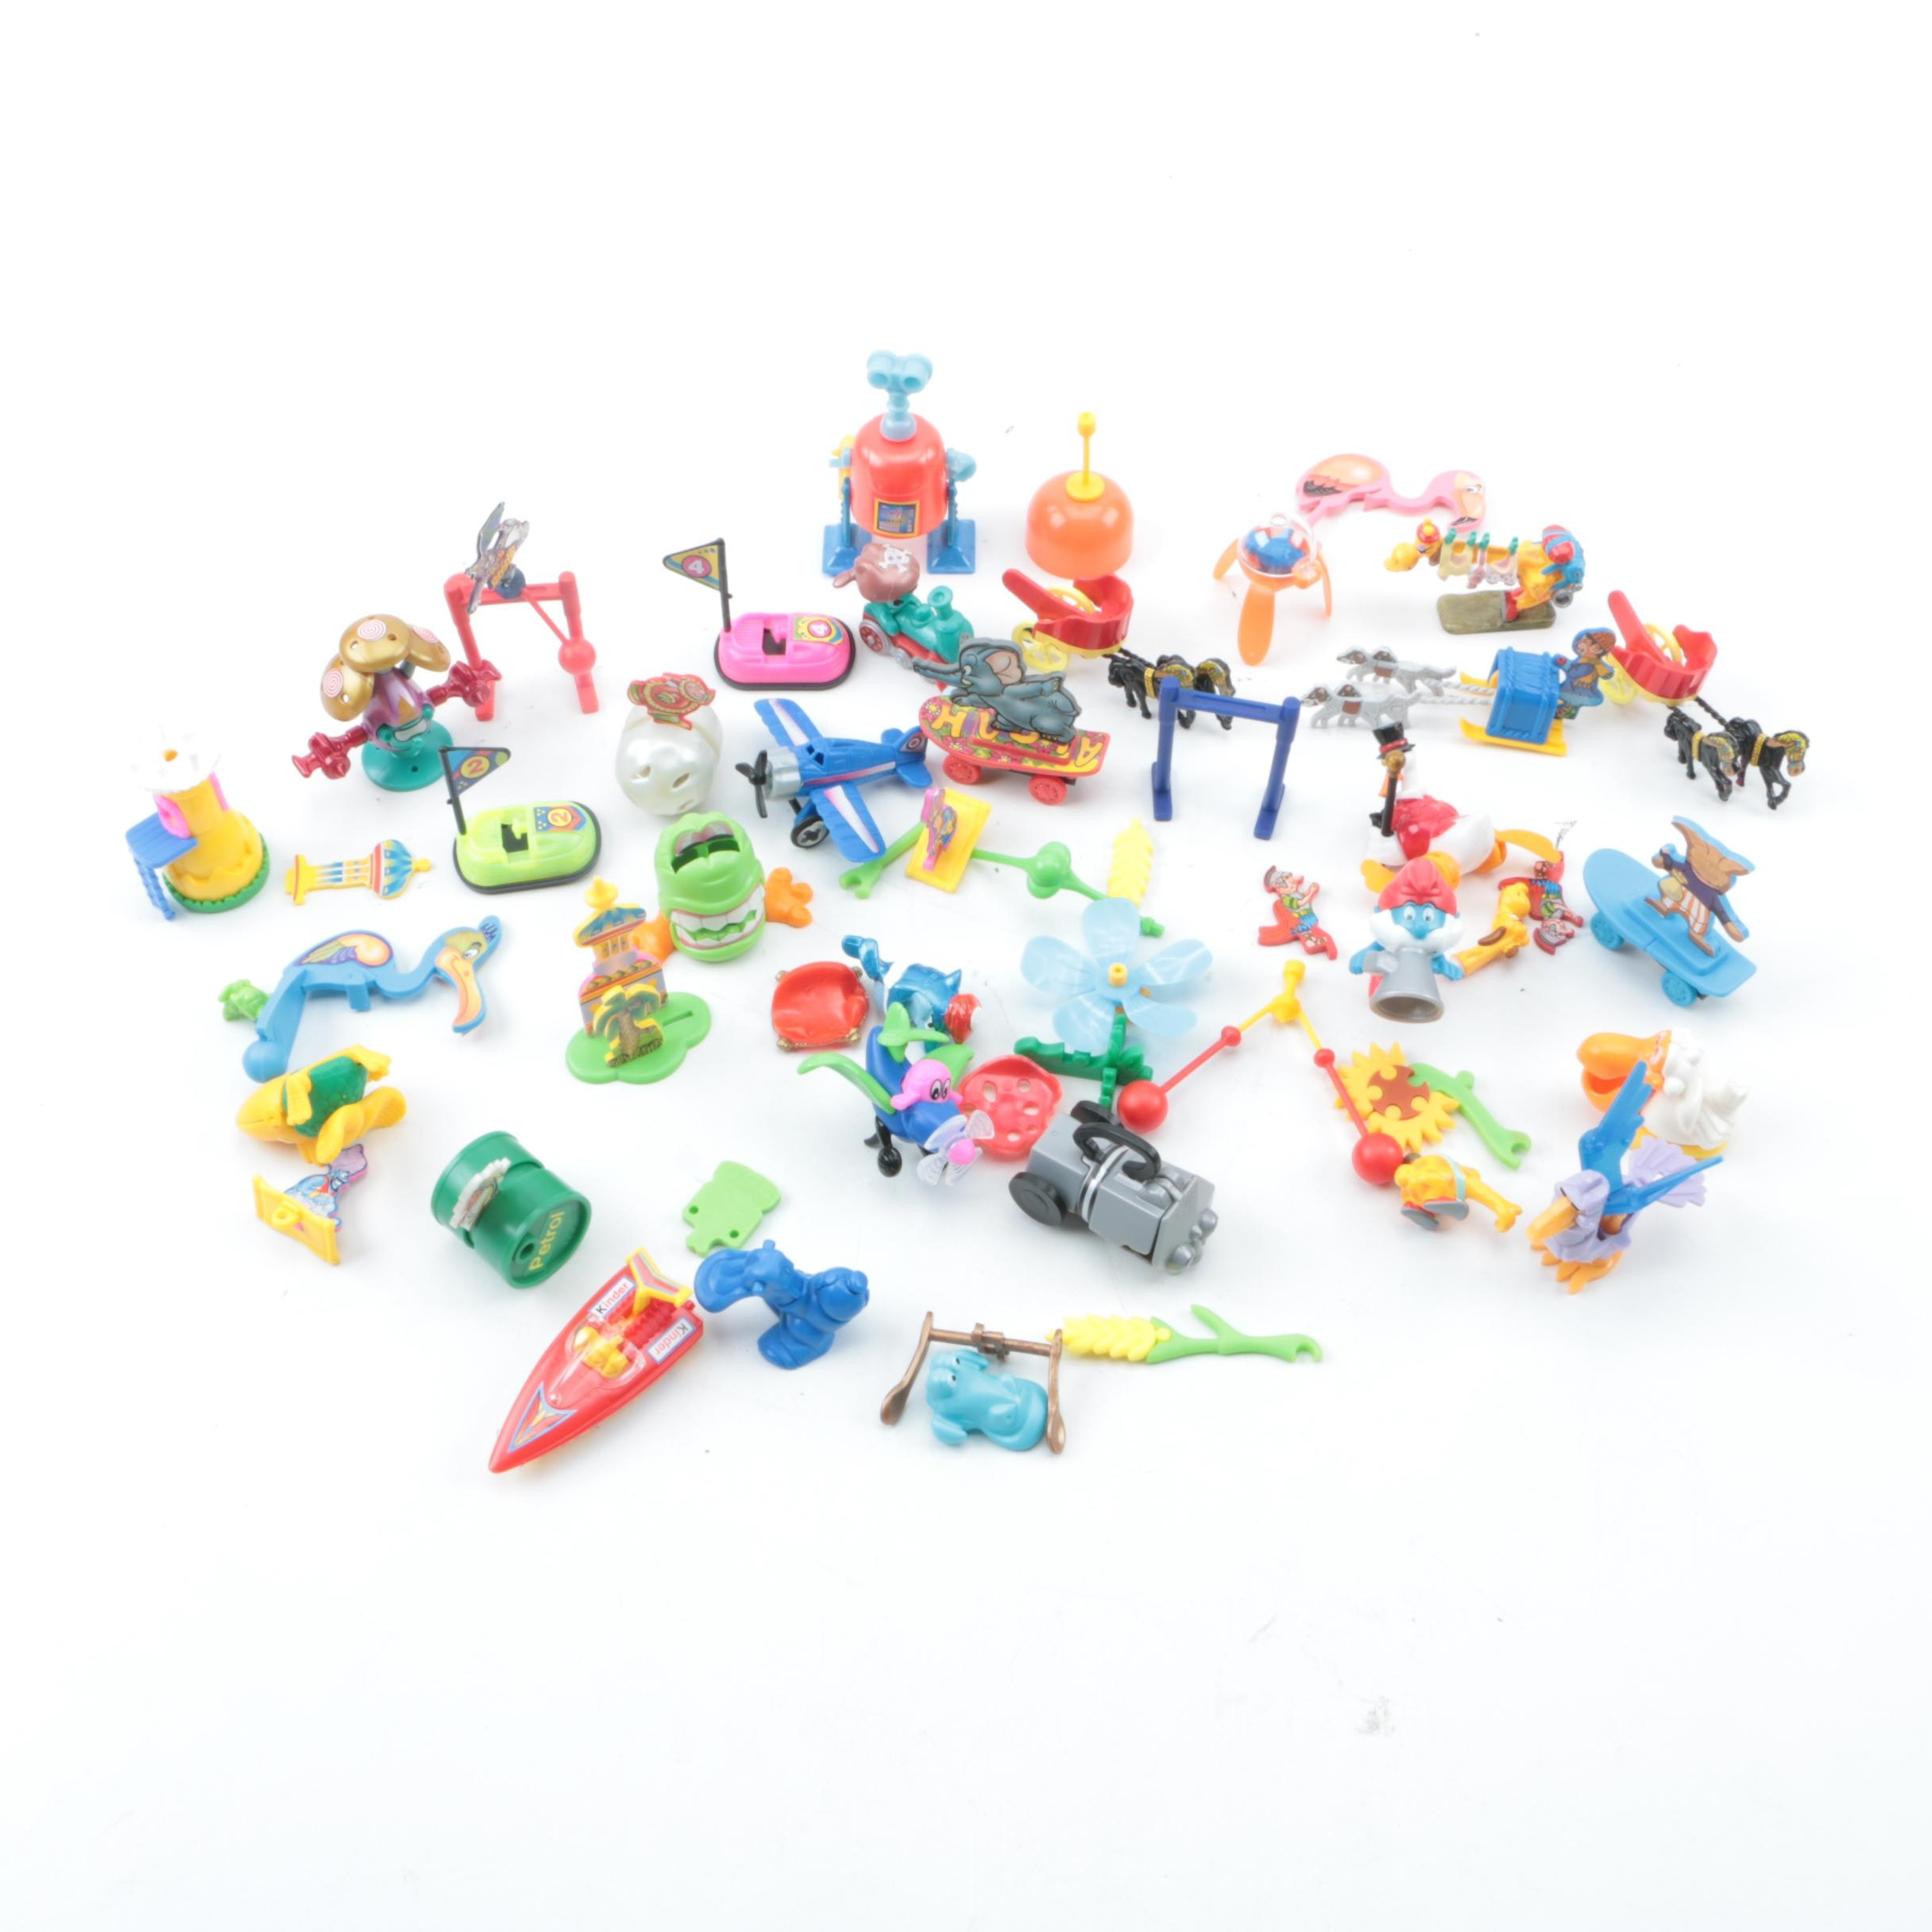 Kinder Surprise Egg Toys